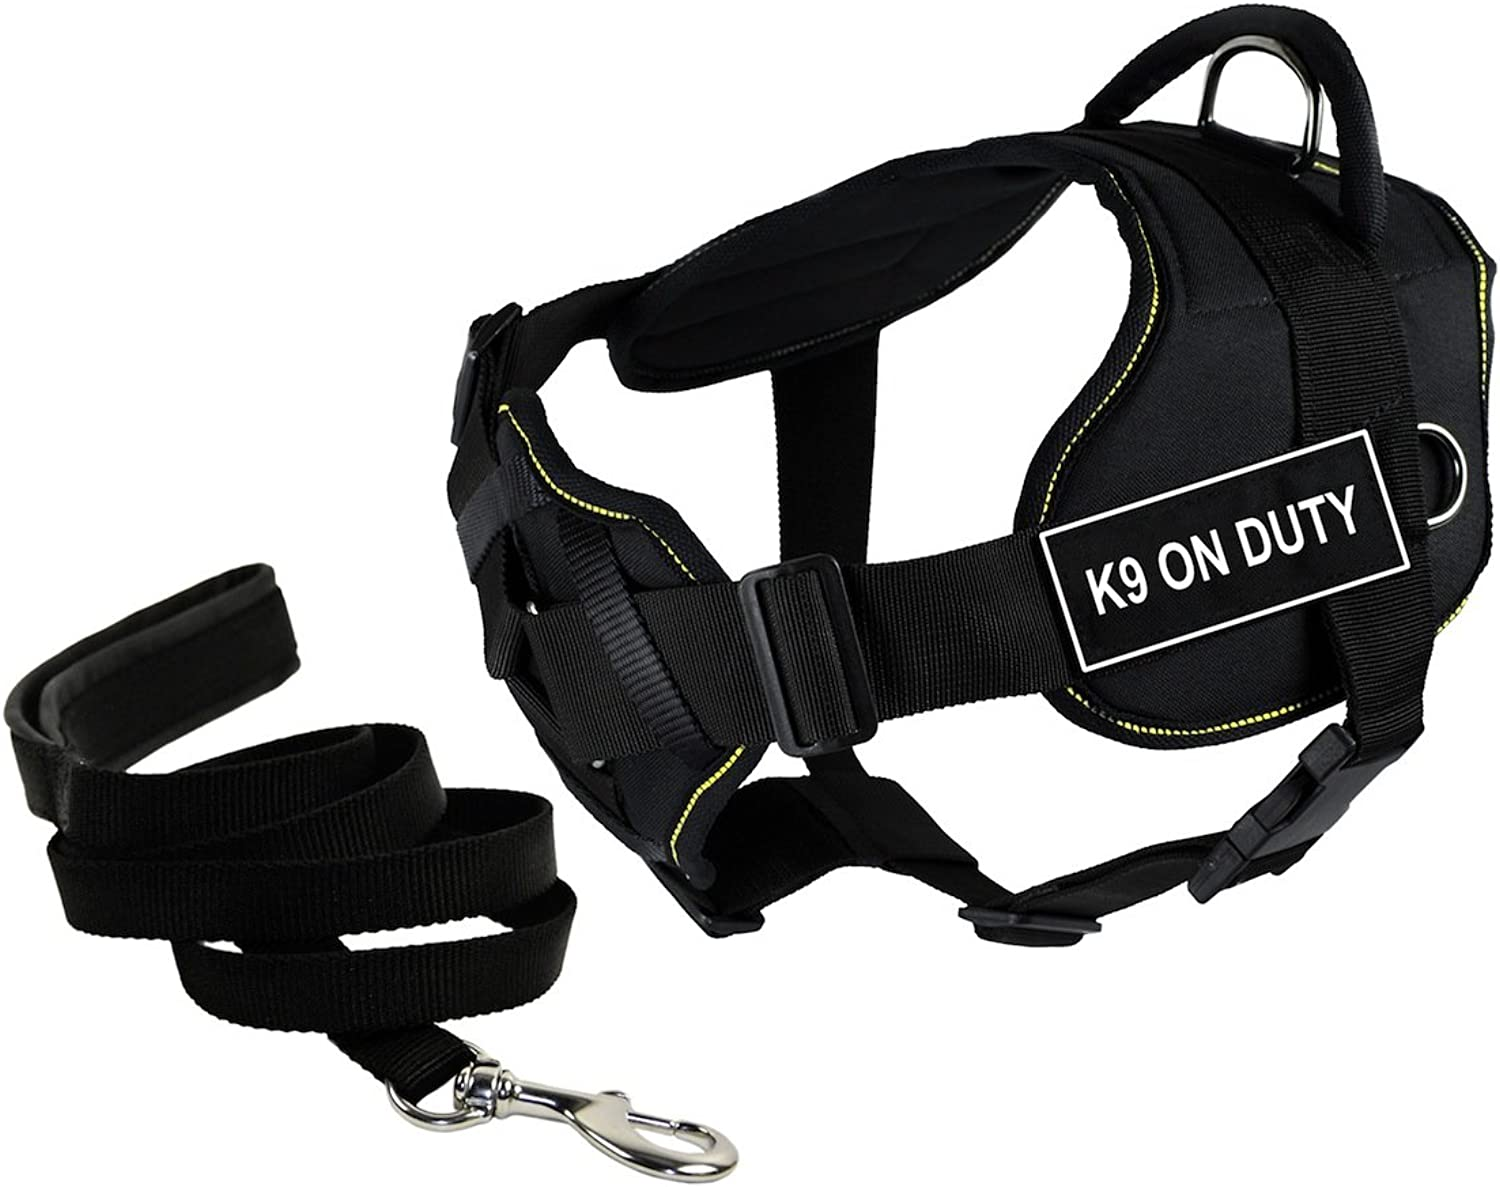 Dean & Tyler's DT Fun Chest Support K9 ON DUTY Harness, Medium, with 6 ft Padded Puppy Leash.